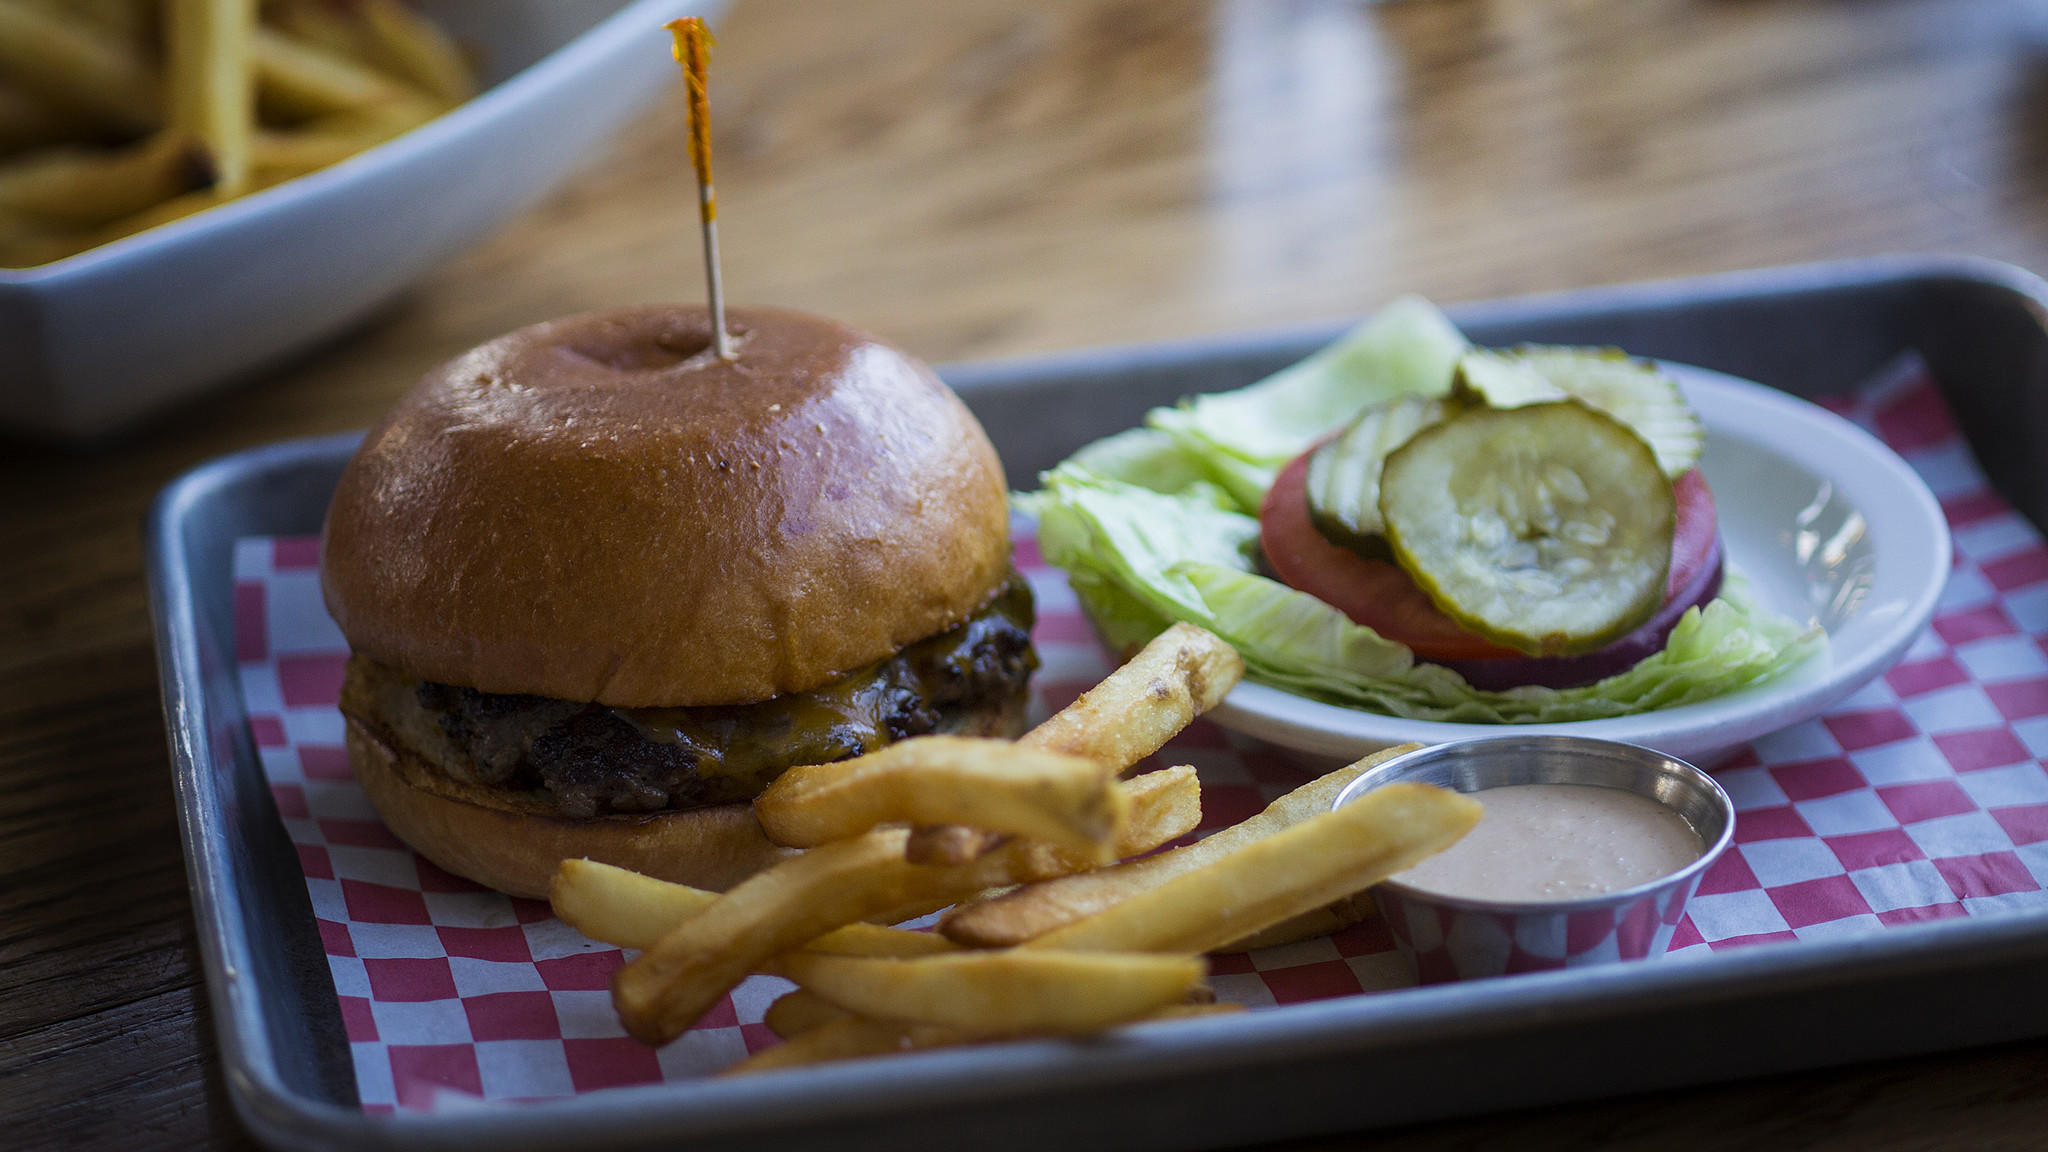 Chef April Bloomfield tasted this Classic Burger during her Burger Crawl stop at Cassells.